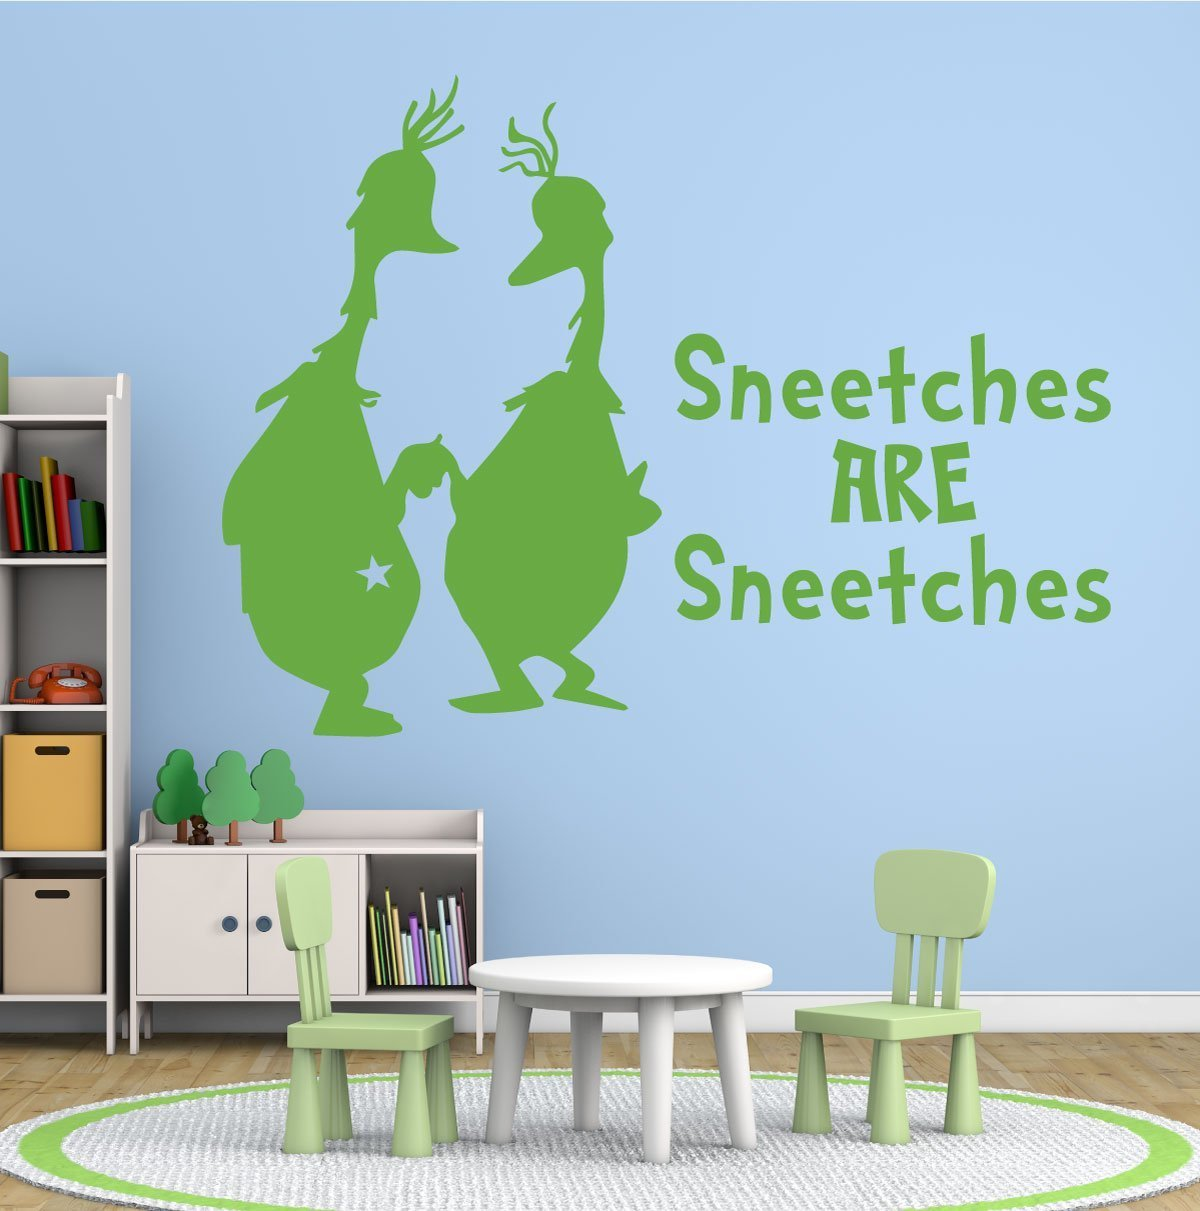 Dr. Seuss Wall Decals - Sneetches Are Sneetches ...  sc 1 st  CustomVinylDecor.com & Dr. Seuss Wall Decals - Sneetches Are Sneetches - CustomVinylDecor.com